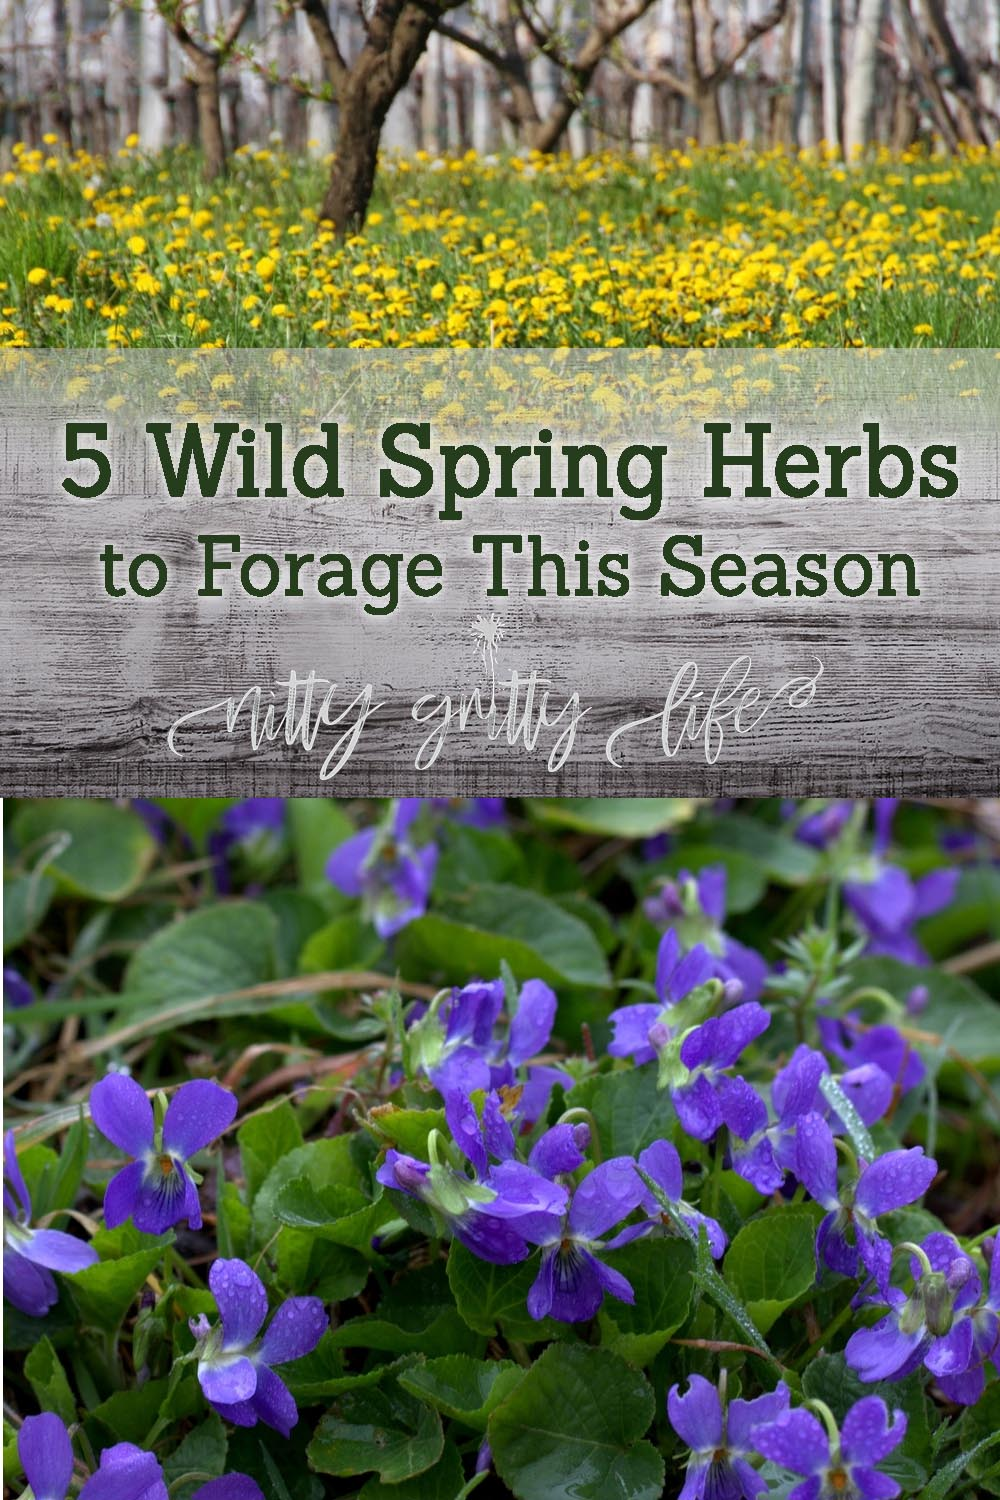 Learn how to identify and harvest five wild spring herbs for food and medicine.